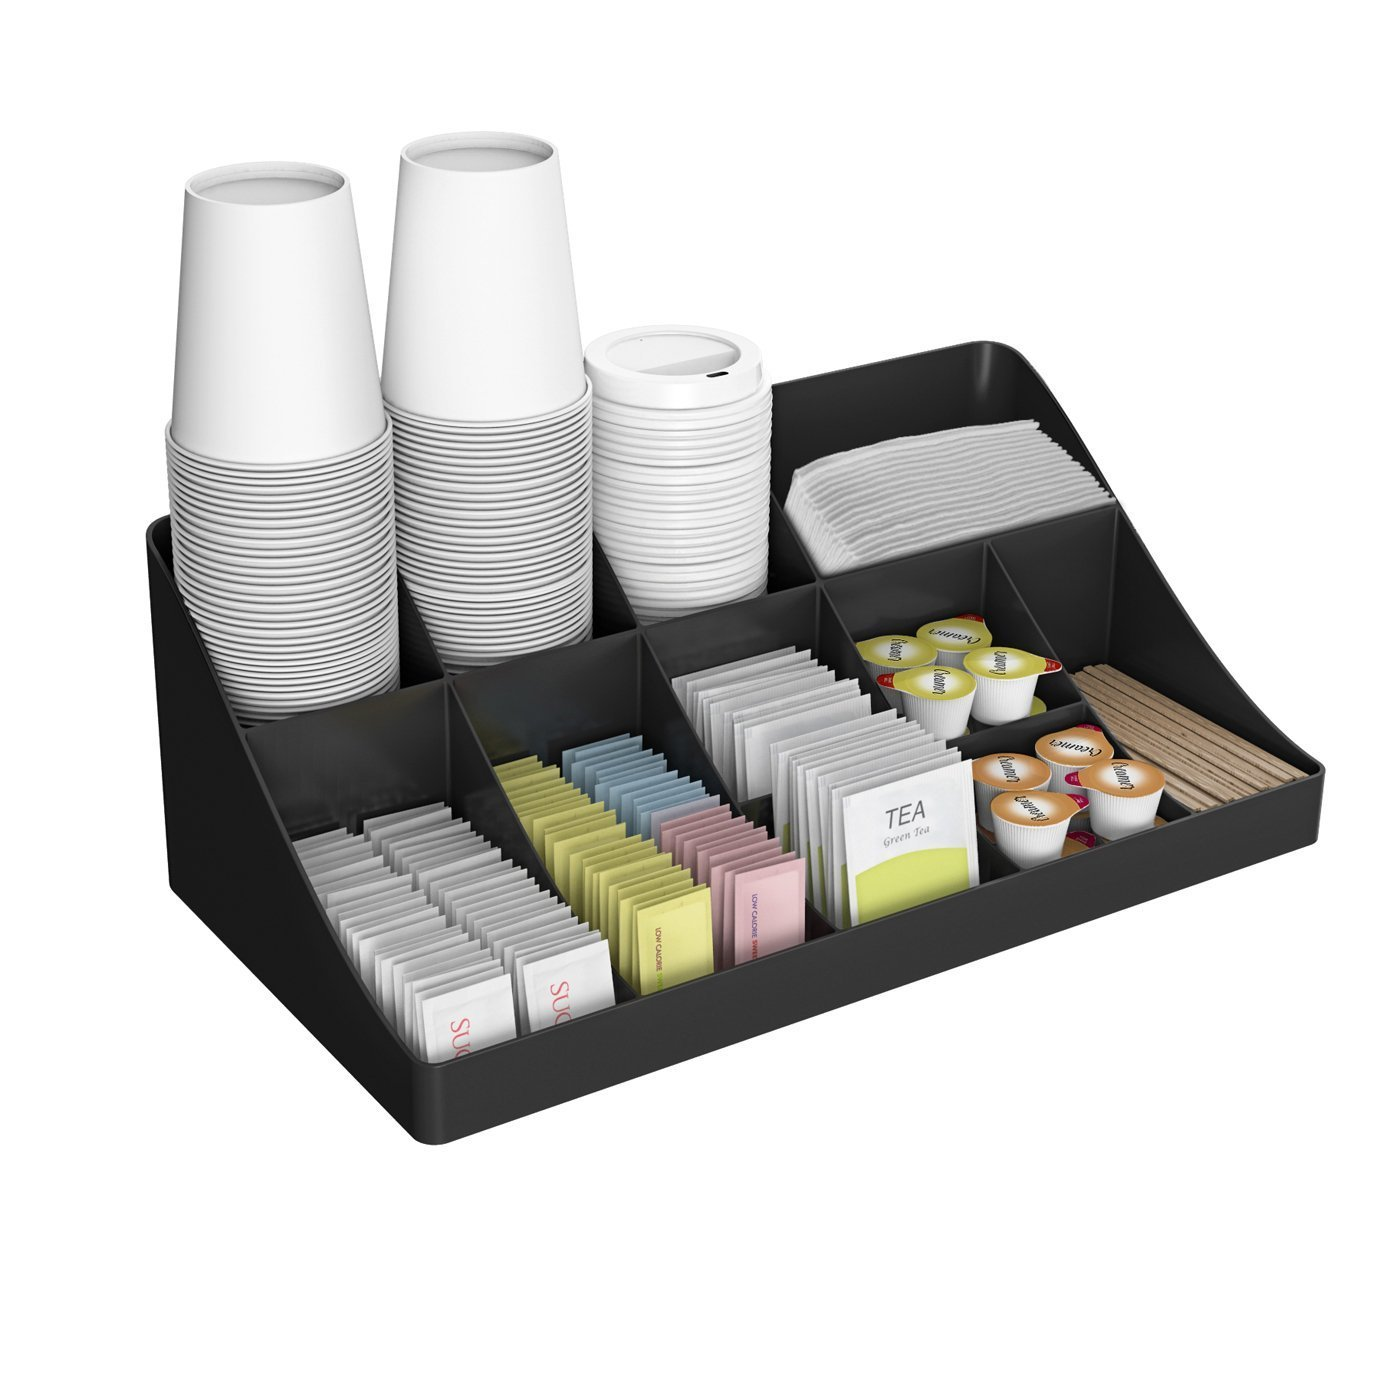 Mind Reader 11 Compartment Breakroom Coffee Condiment Organizer, Black(Black organizer 11 compartments)